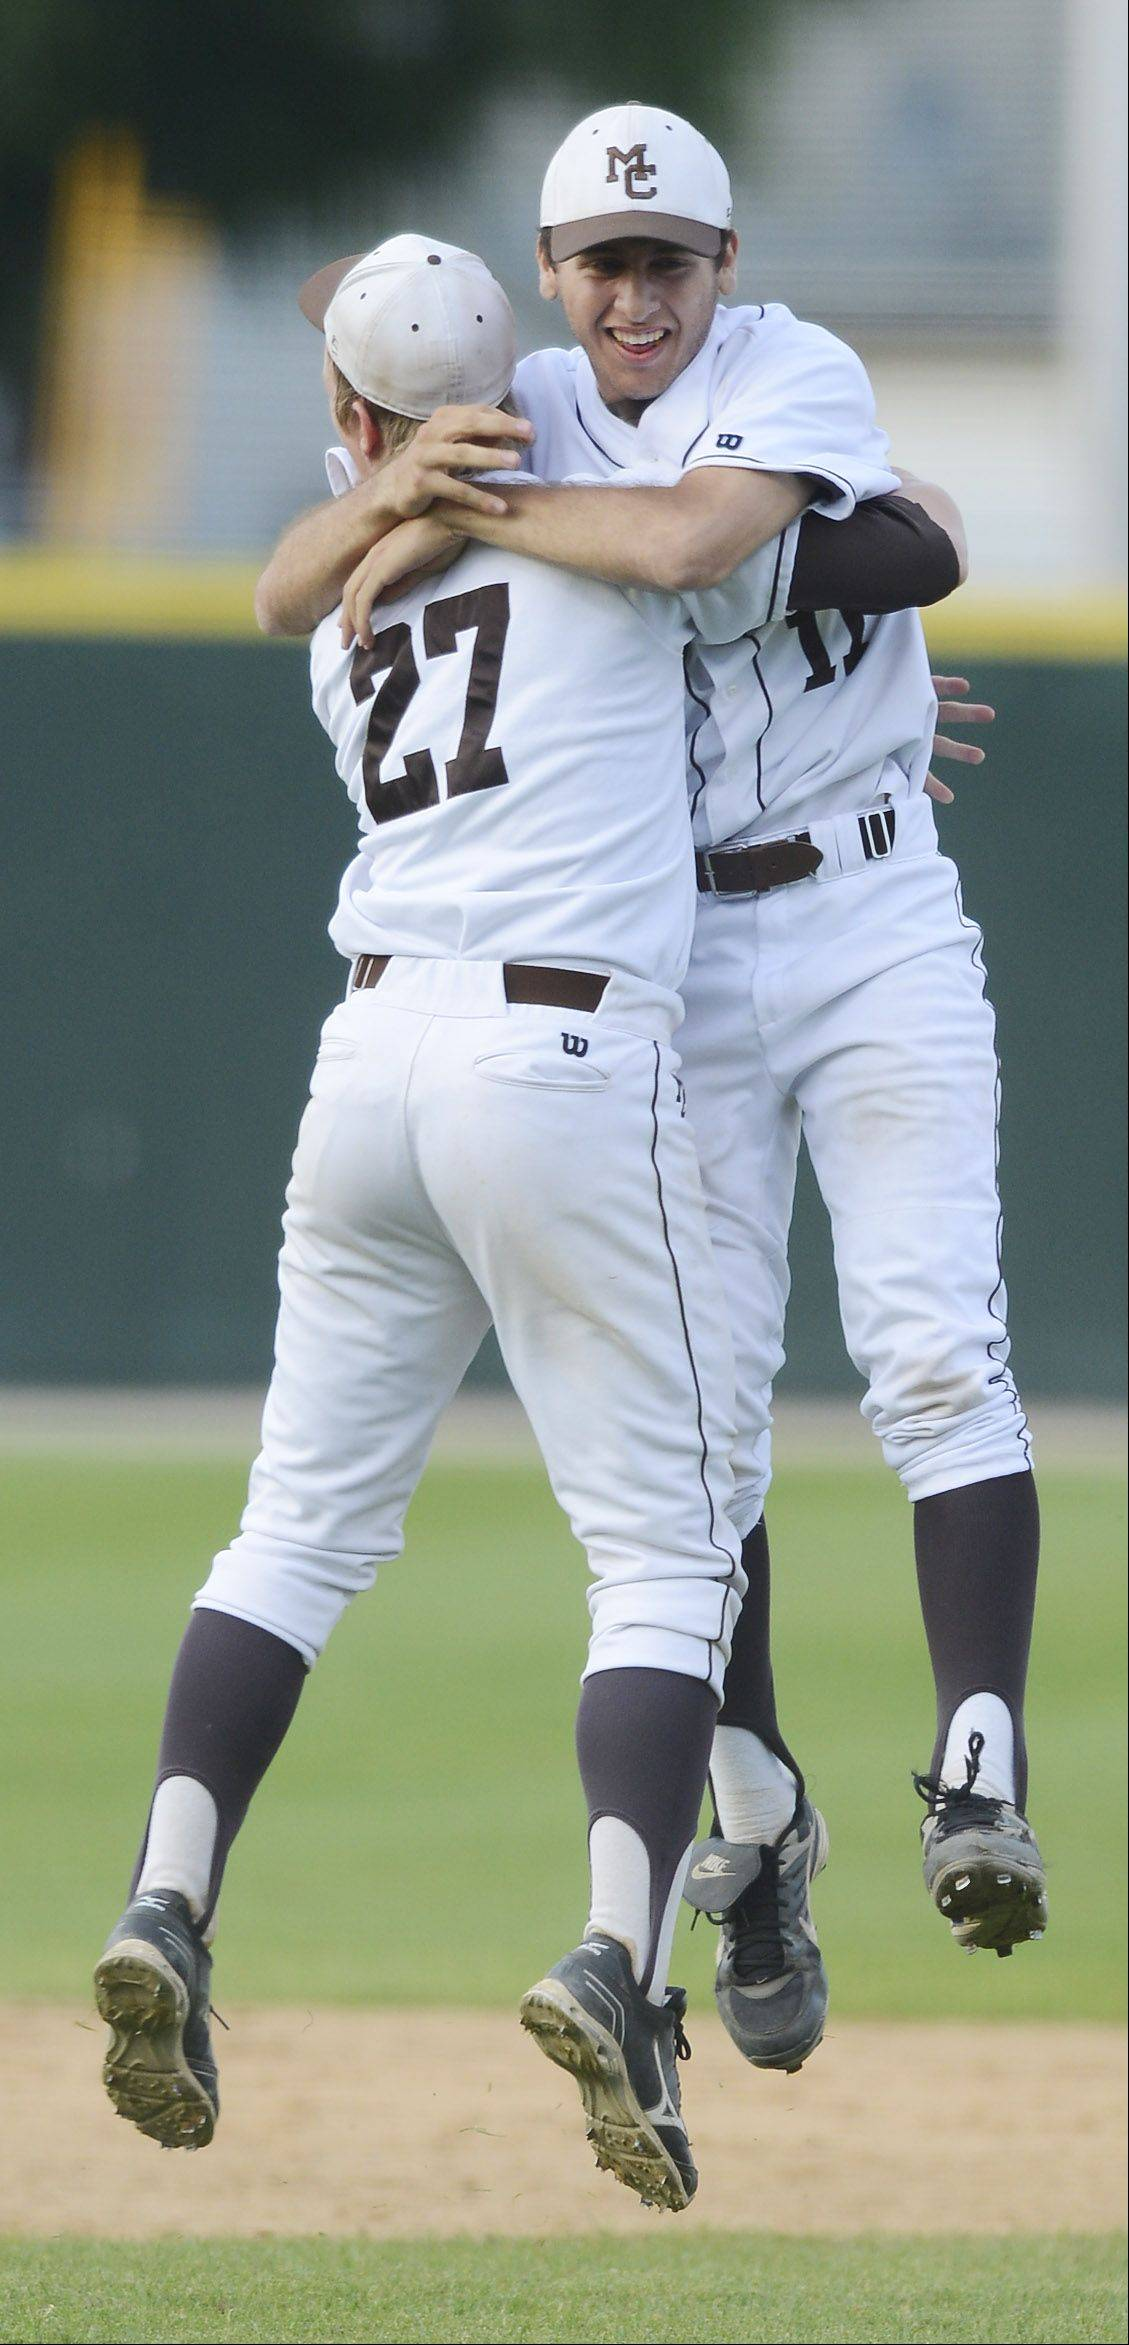 Mt. Carmel pitcher Jeremy Kravetz, right, celebrates his team's victory over Libertyville with teammate Beau Filkins in the Class 4A state baseball championship game at Silver Cross Field in Joliet Saturday.